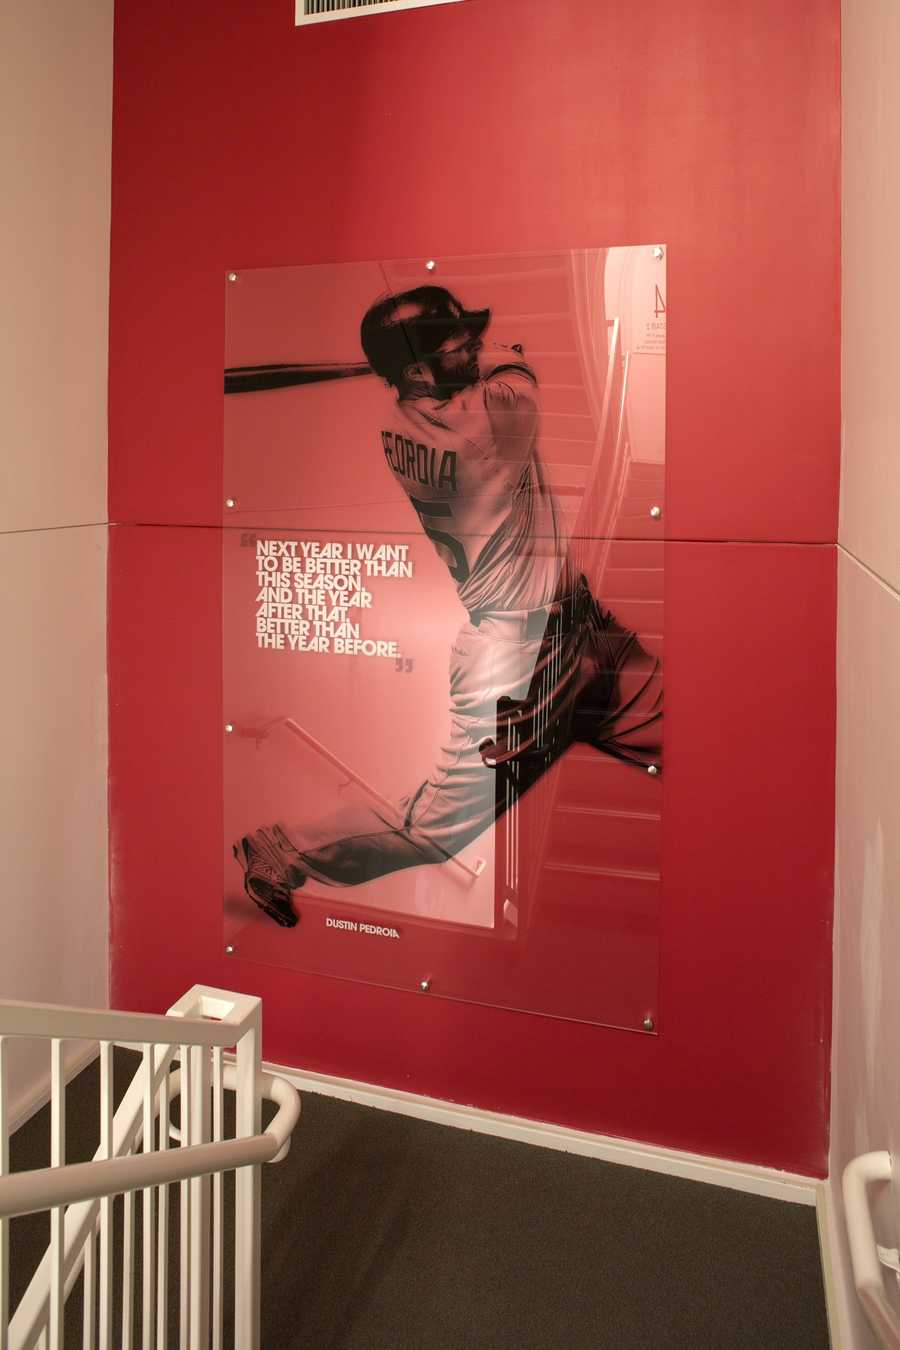 Staircase featuring Boston Red Sox Dustin Pedroia